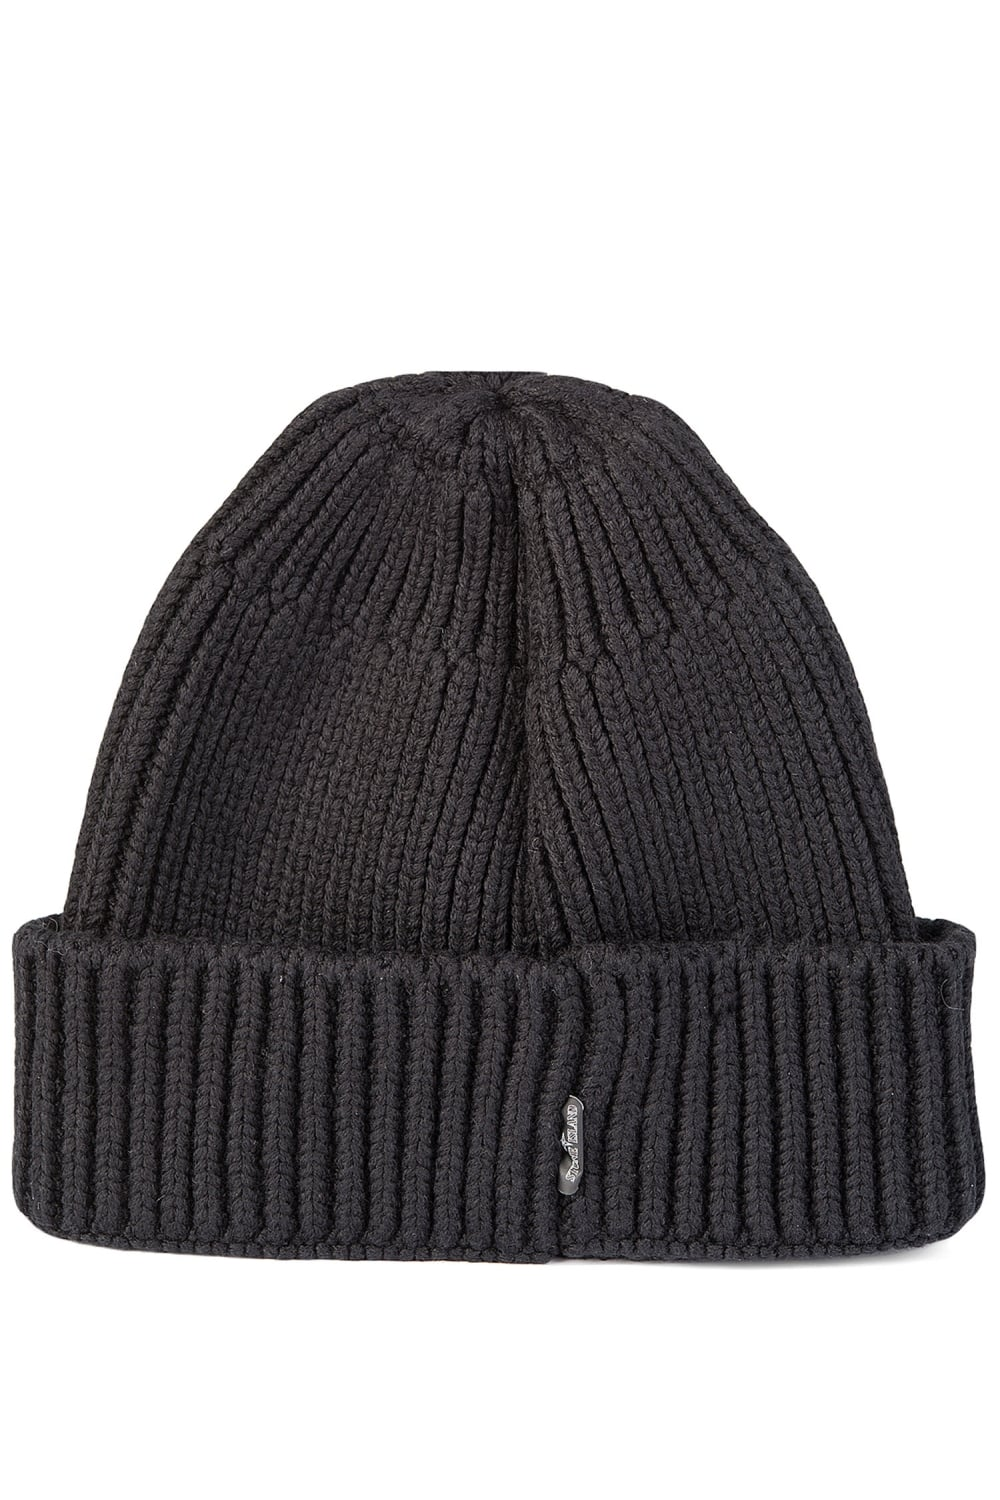 Stone Island Shadow Project Knitted Hat Black c14ec38017a